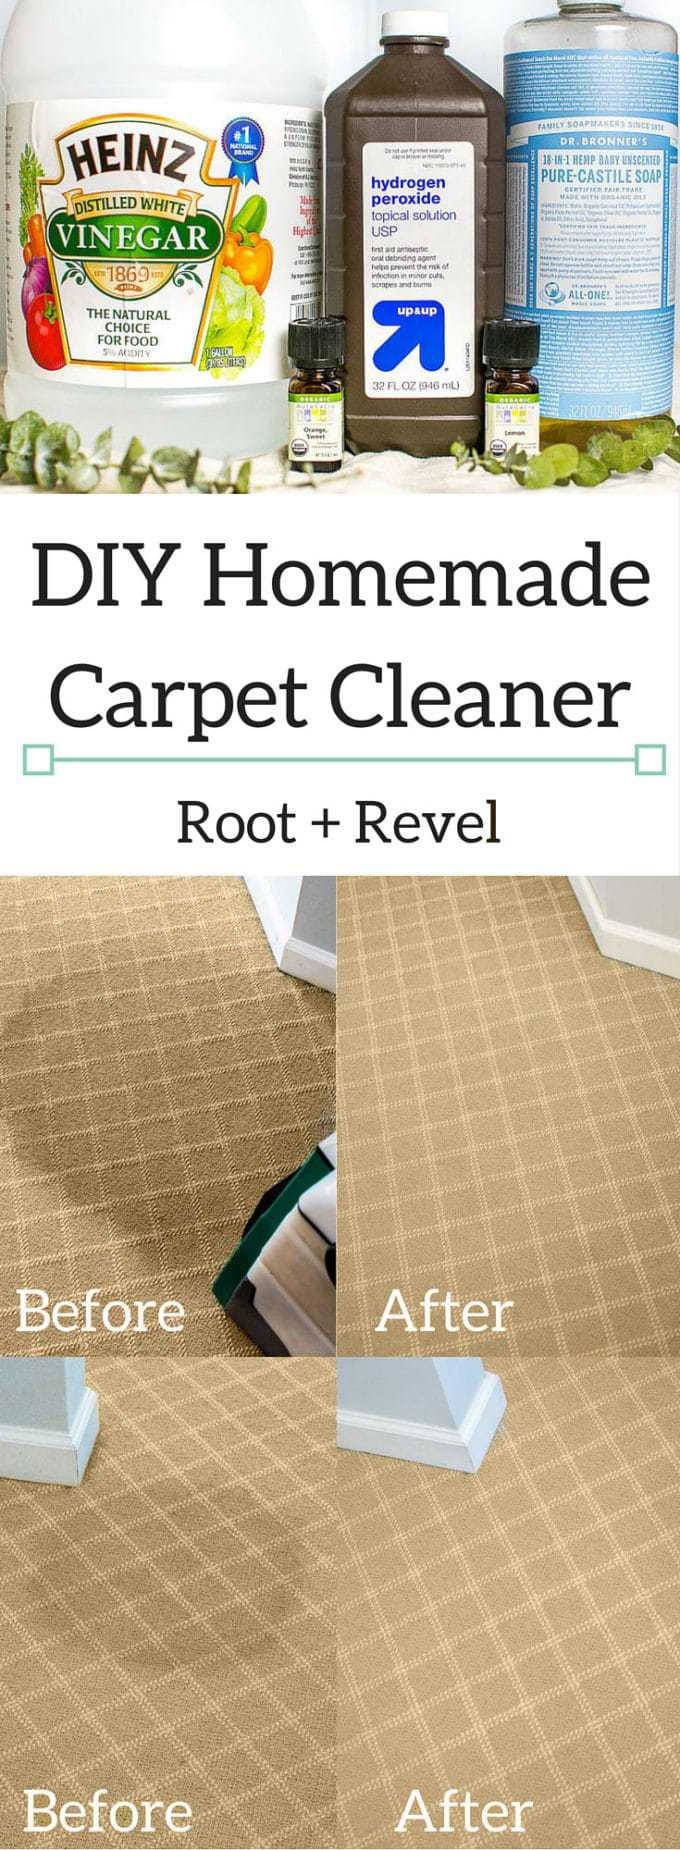 Toss toxic cleaners and dangerous chemicals! Remove stains with this safe, effective DIY homemade carpet cleaner. Quick + easy to make with pantry staples! }| rootandrevel.com